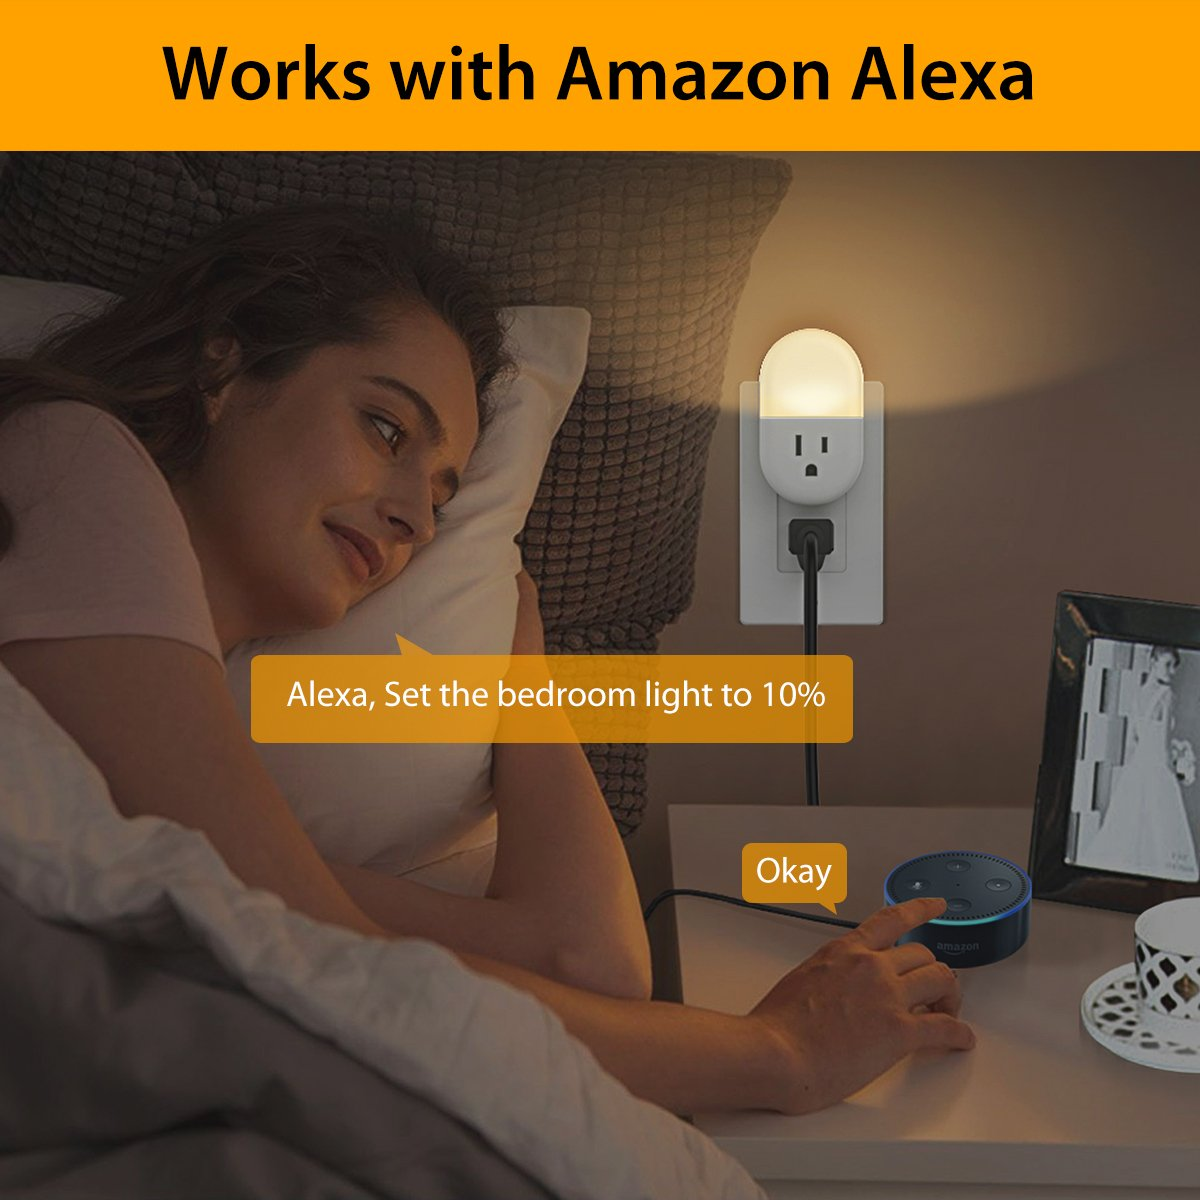 iMah Night Light Plug-in, Smart Plug works with Alexa Google Assistant IFTTT, WiFi Smart Plug Mini Outlet Socket control your Devices from Anywhere (4-Pack) by iMah (Image #4)